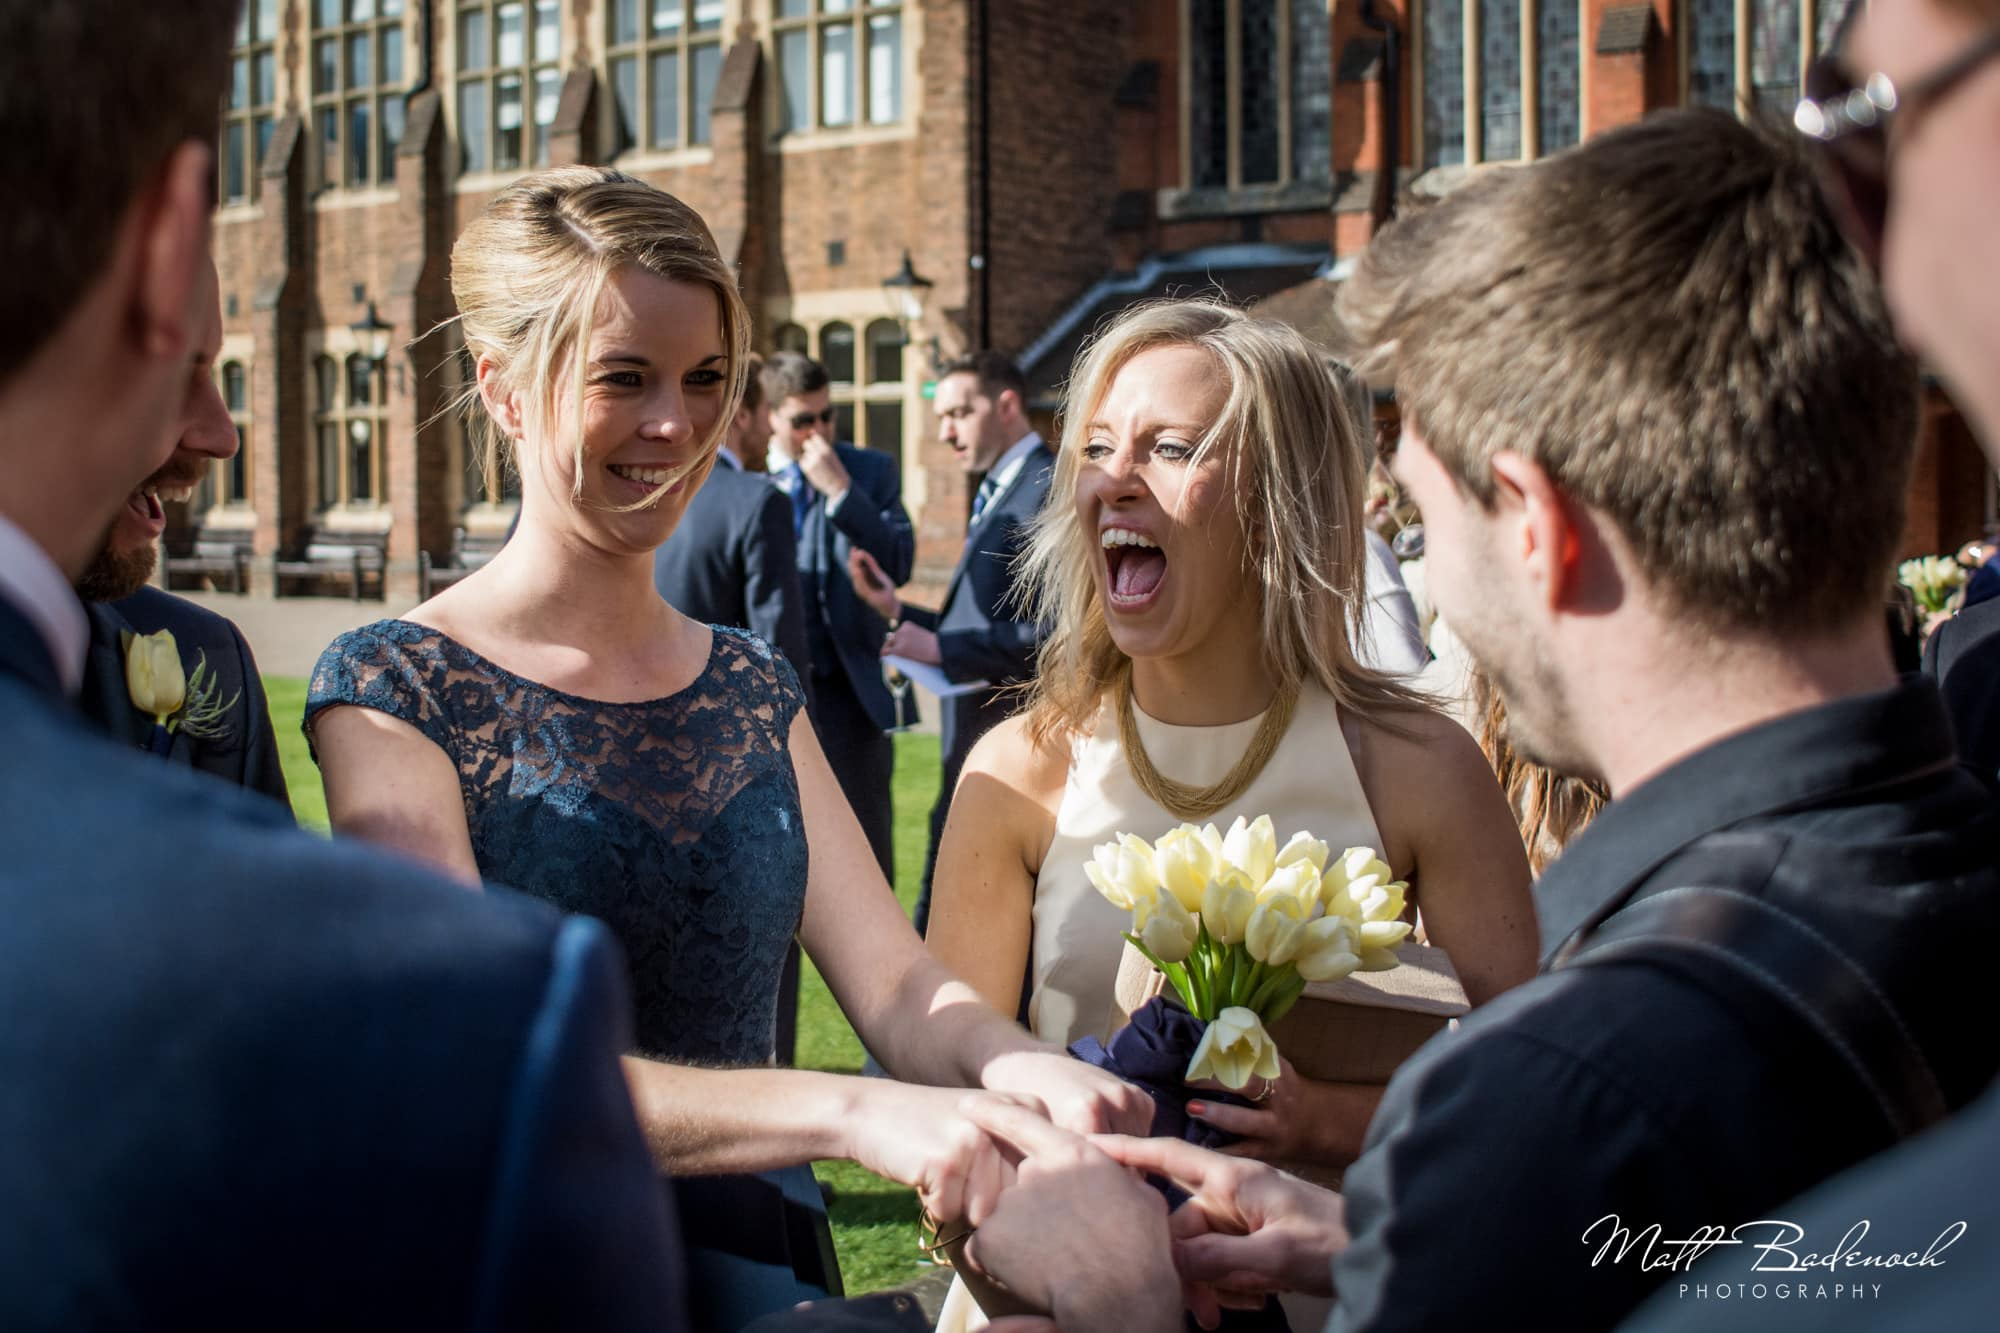 laughing guests, Neb Magic wedding magician London | Matt Badenoch Photography